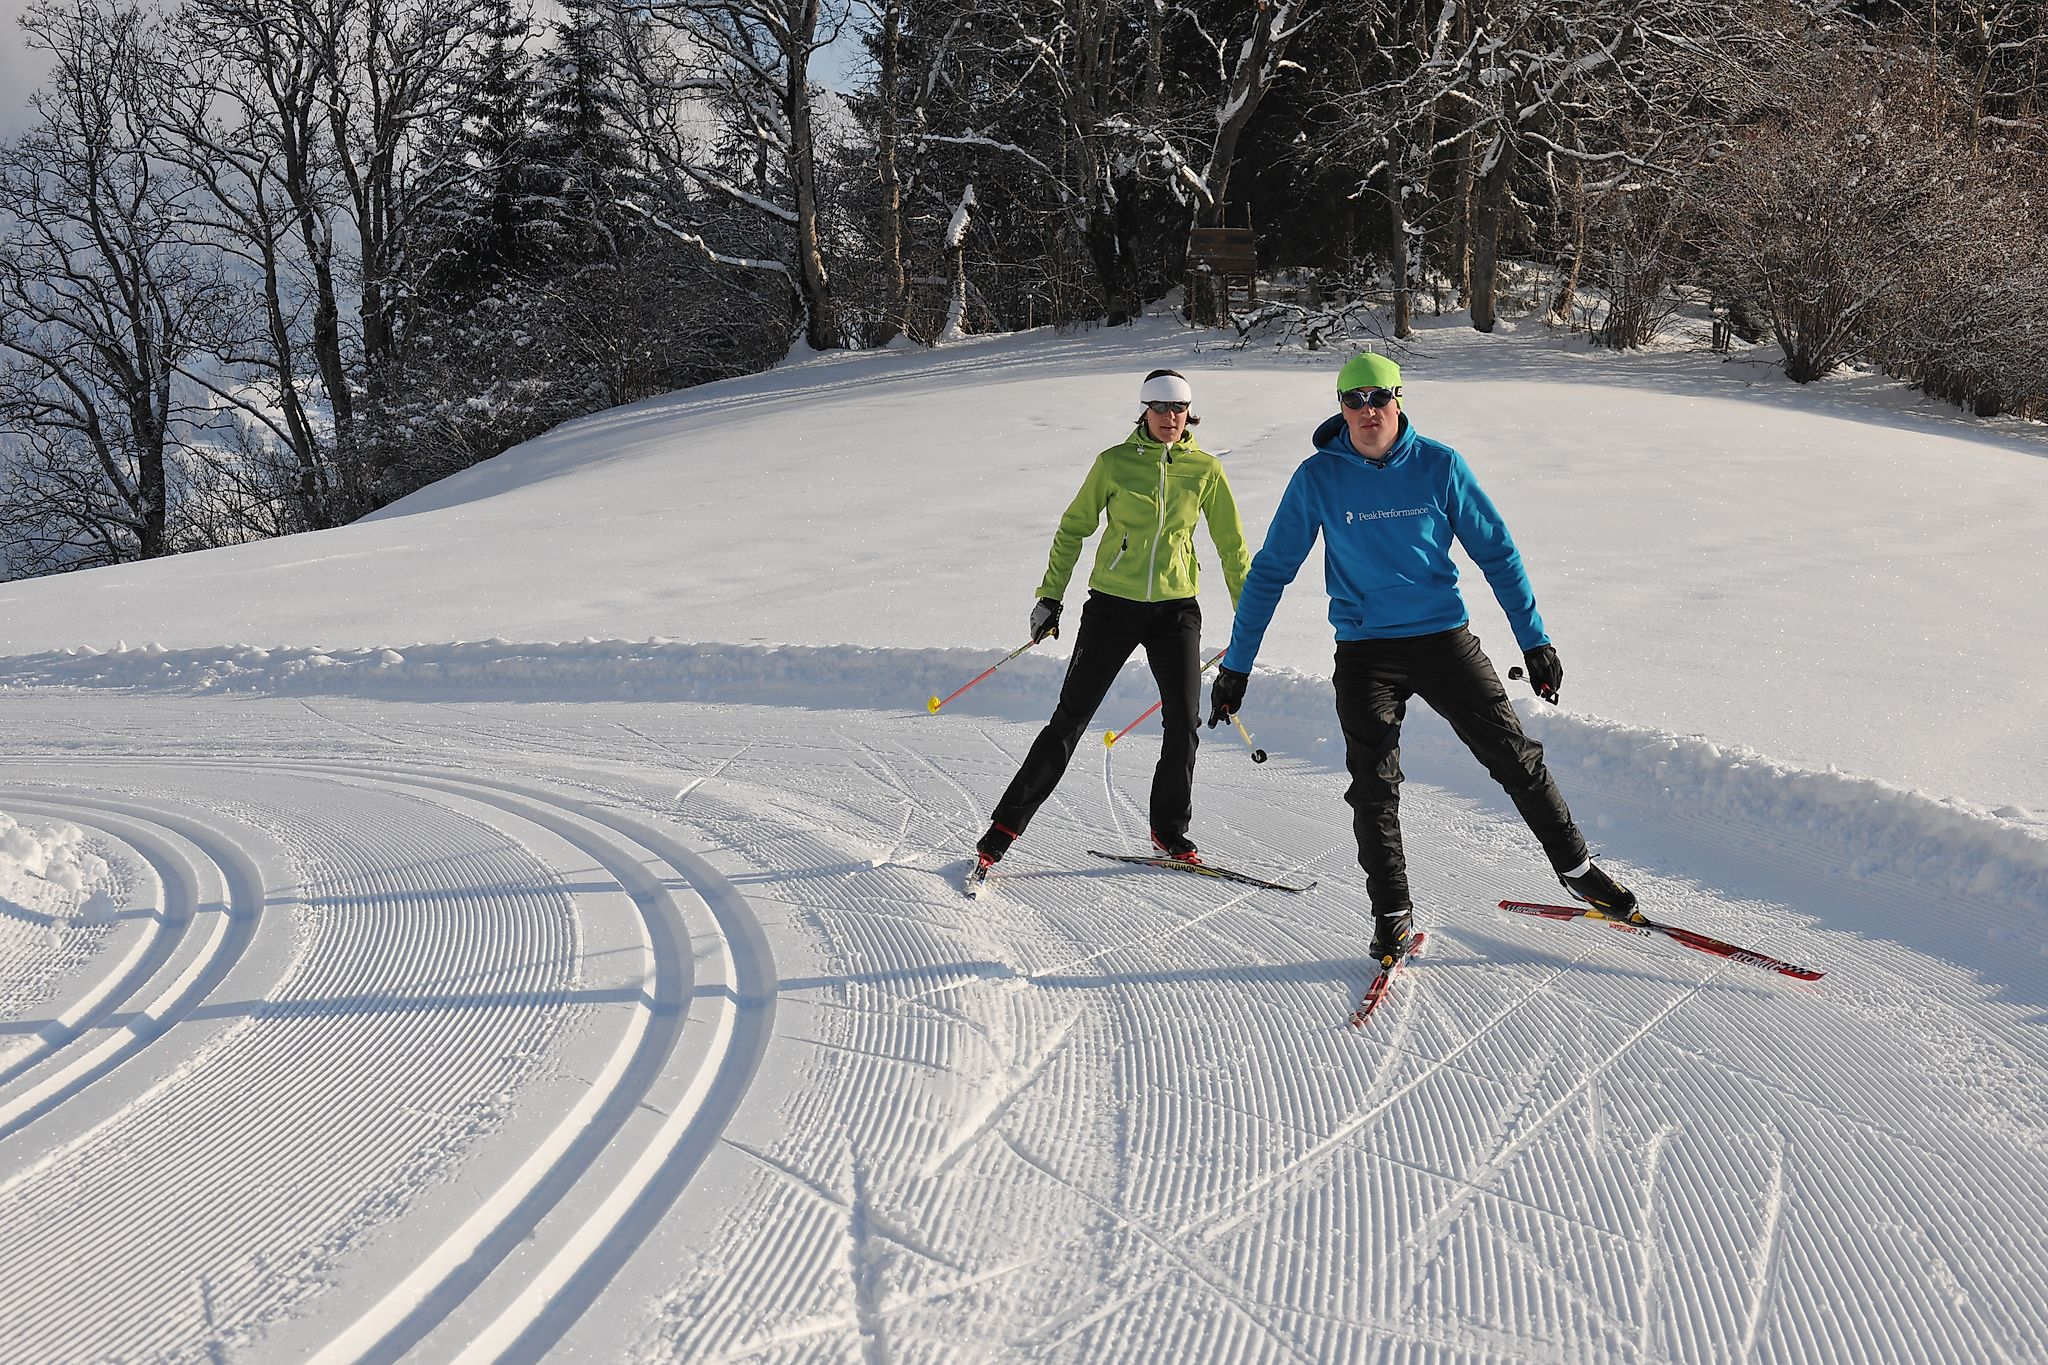 <p>Flachau offers a wide network of cross-country ski tracks for classic as well as for skating fans.</p>